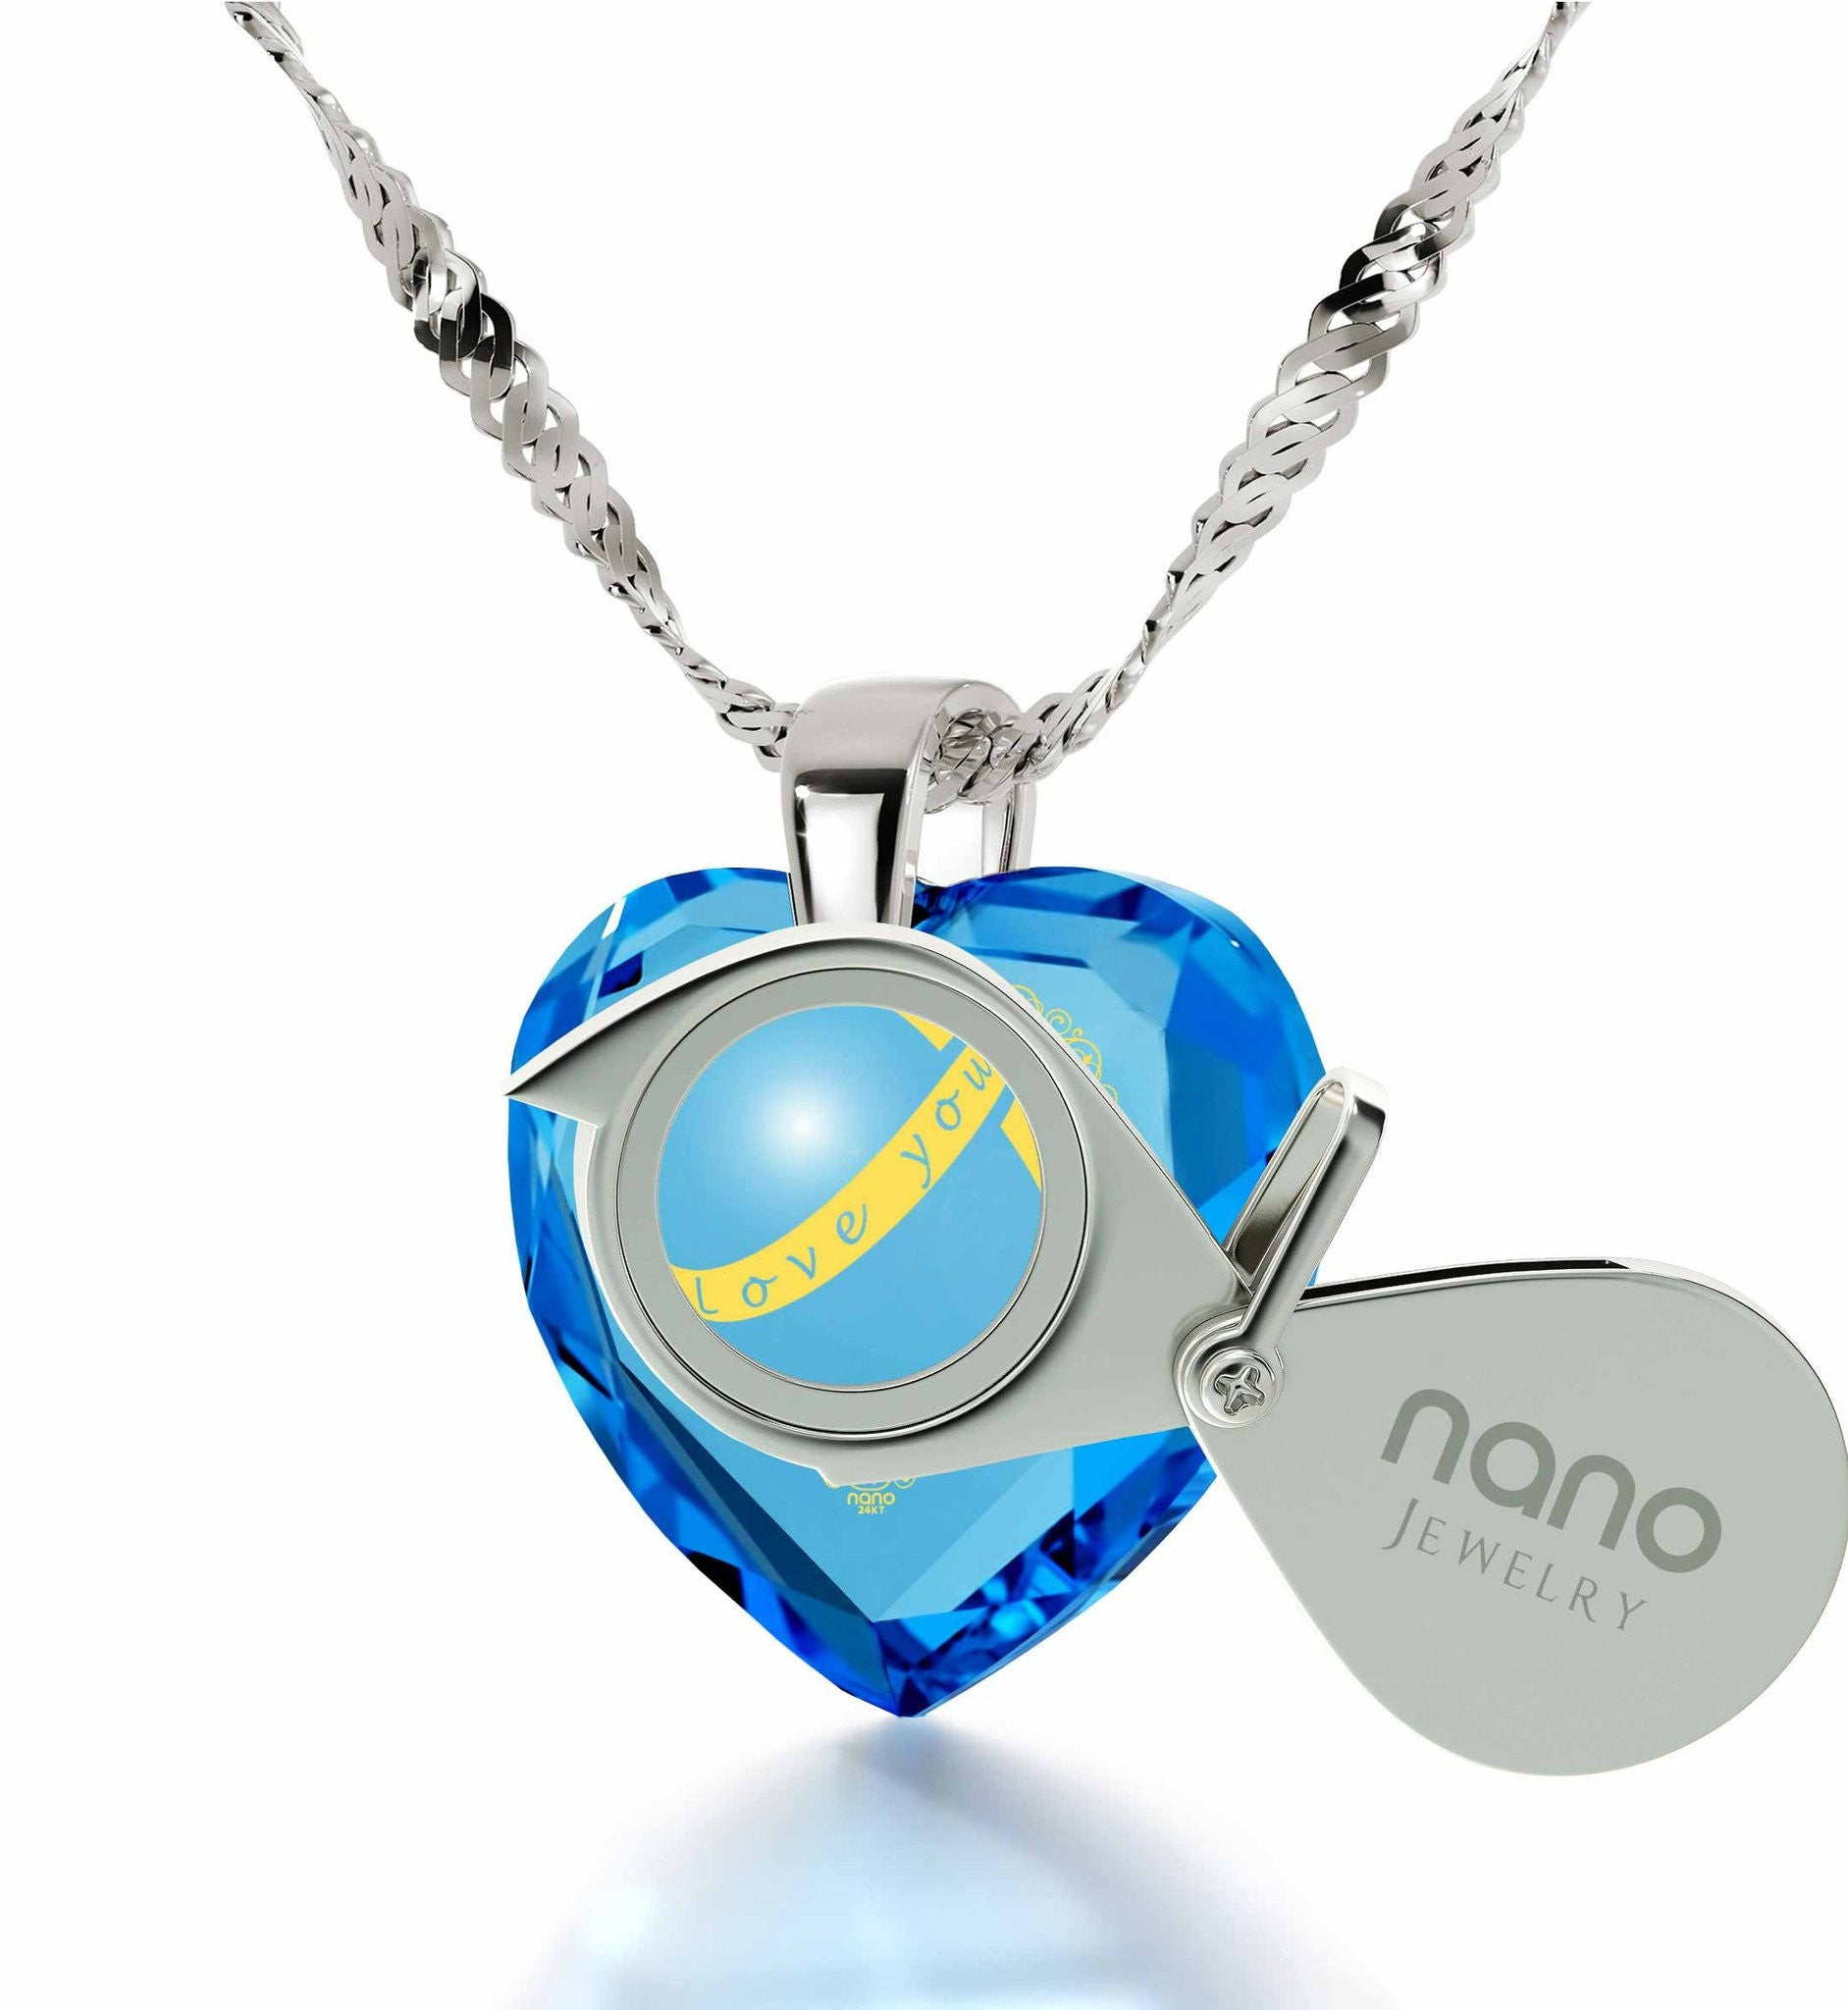 """What to Get Girlfriend for Christmas, Unusual Blue Stone Jewelry, Gift for Wife Birthday, by Nano """